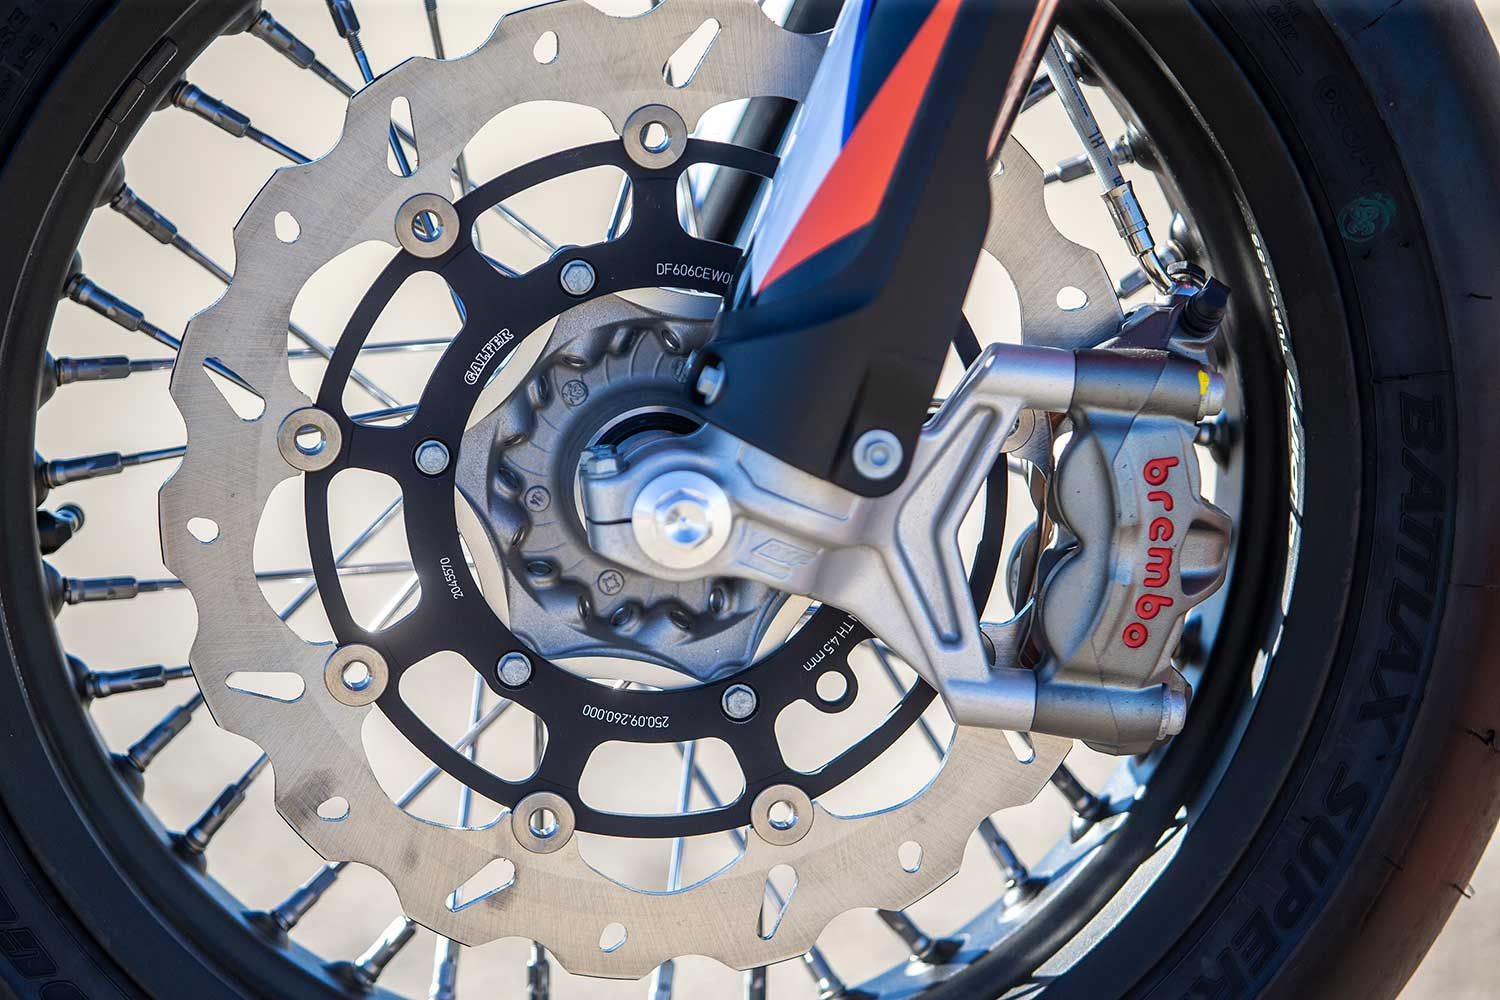 A streetbike-sized front disc brakes does a fine job of shedding speed. The brake pad material has more bite than before with consistent, fade-free performance lap after lap.